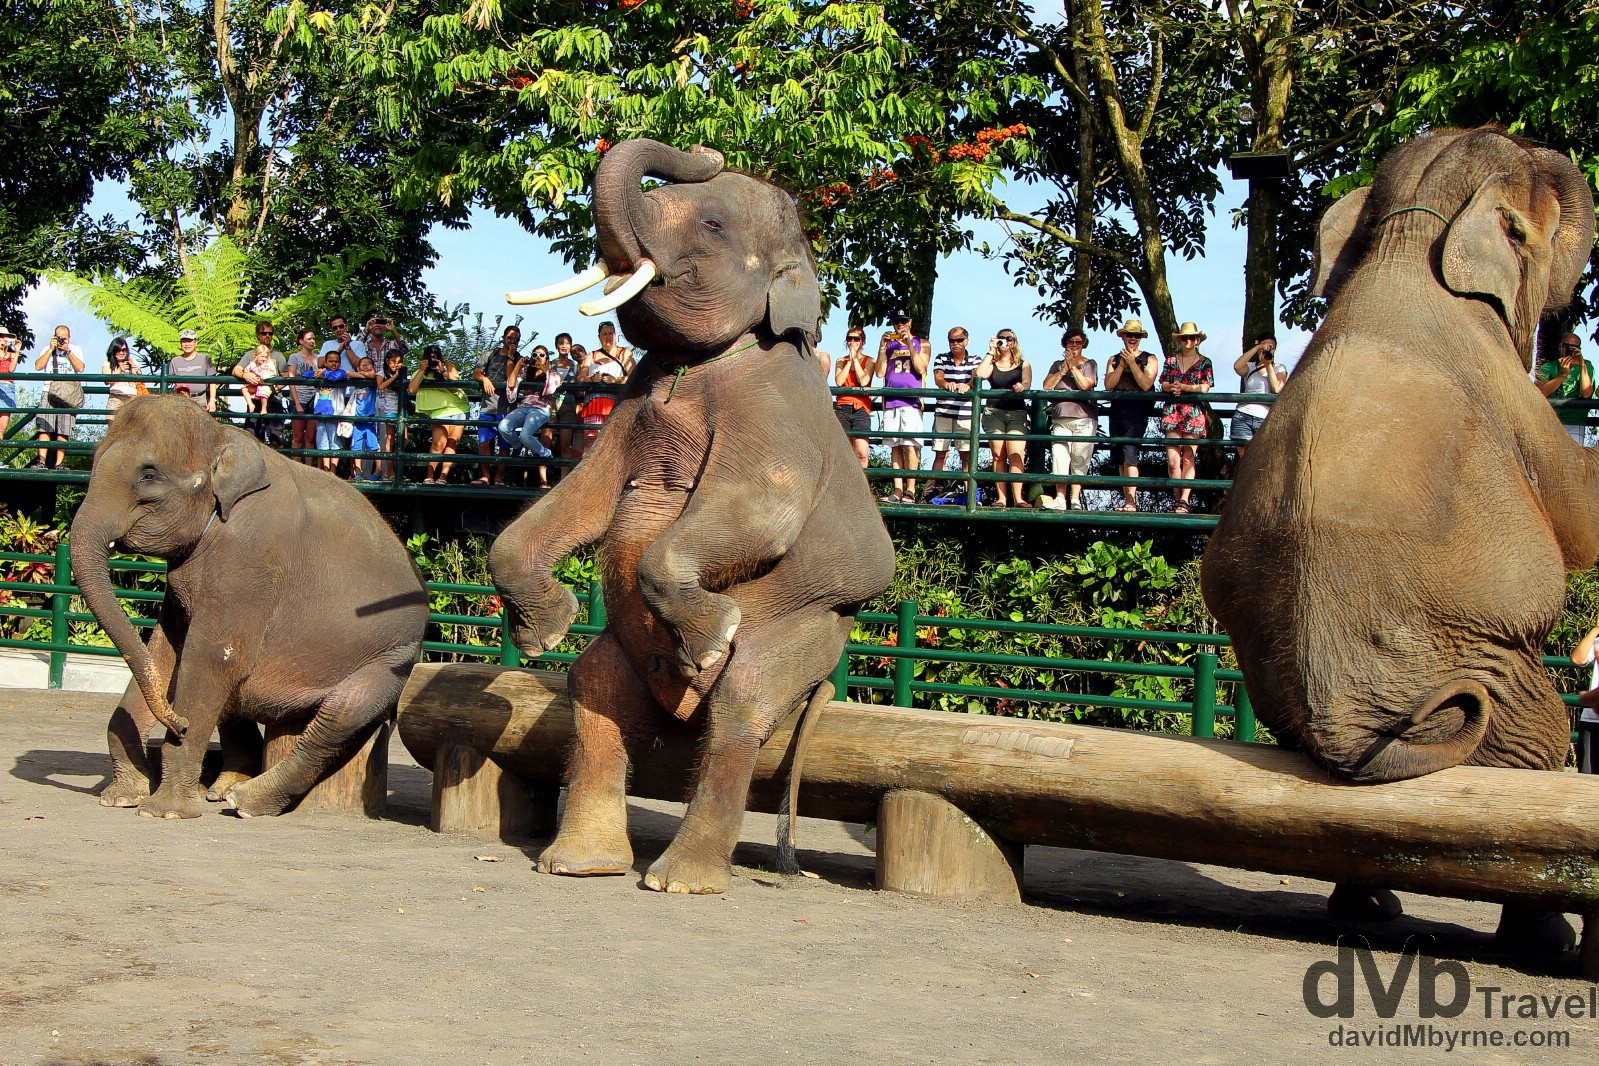 A crowd pleasing performance in the Elephant Safari Park, Taro, Bali, Indonesia. June 18th 2012.